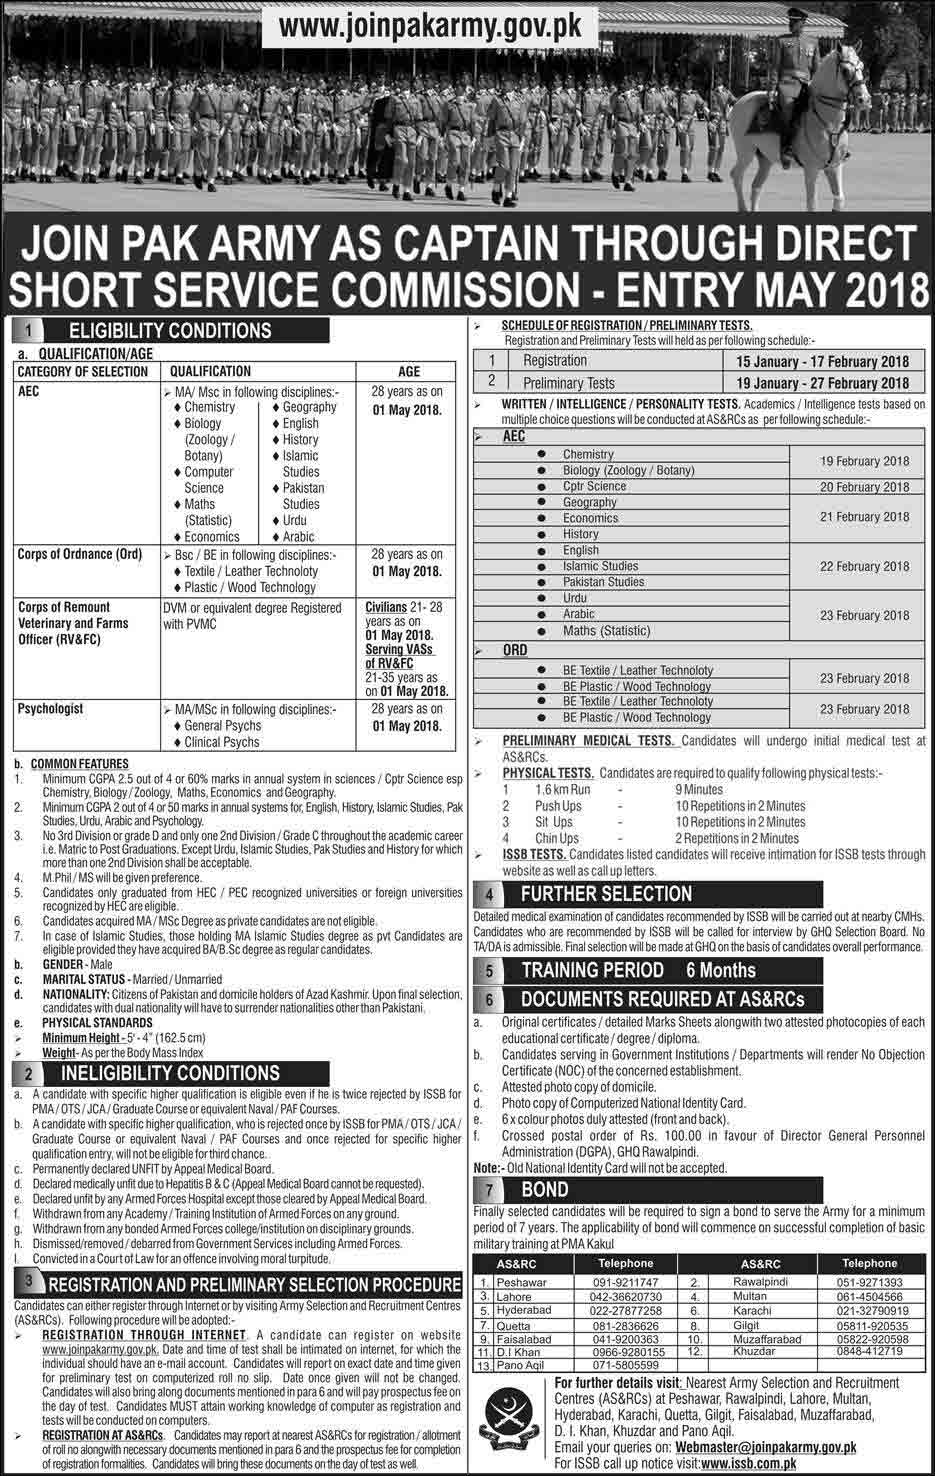 Join-Pak-Army-as-Captain-May-2018